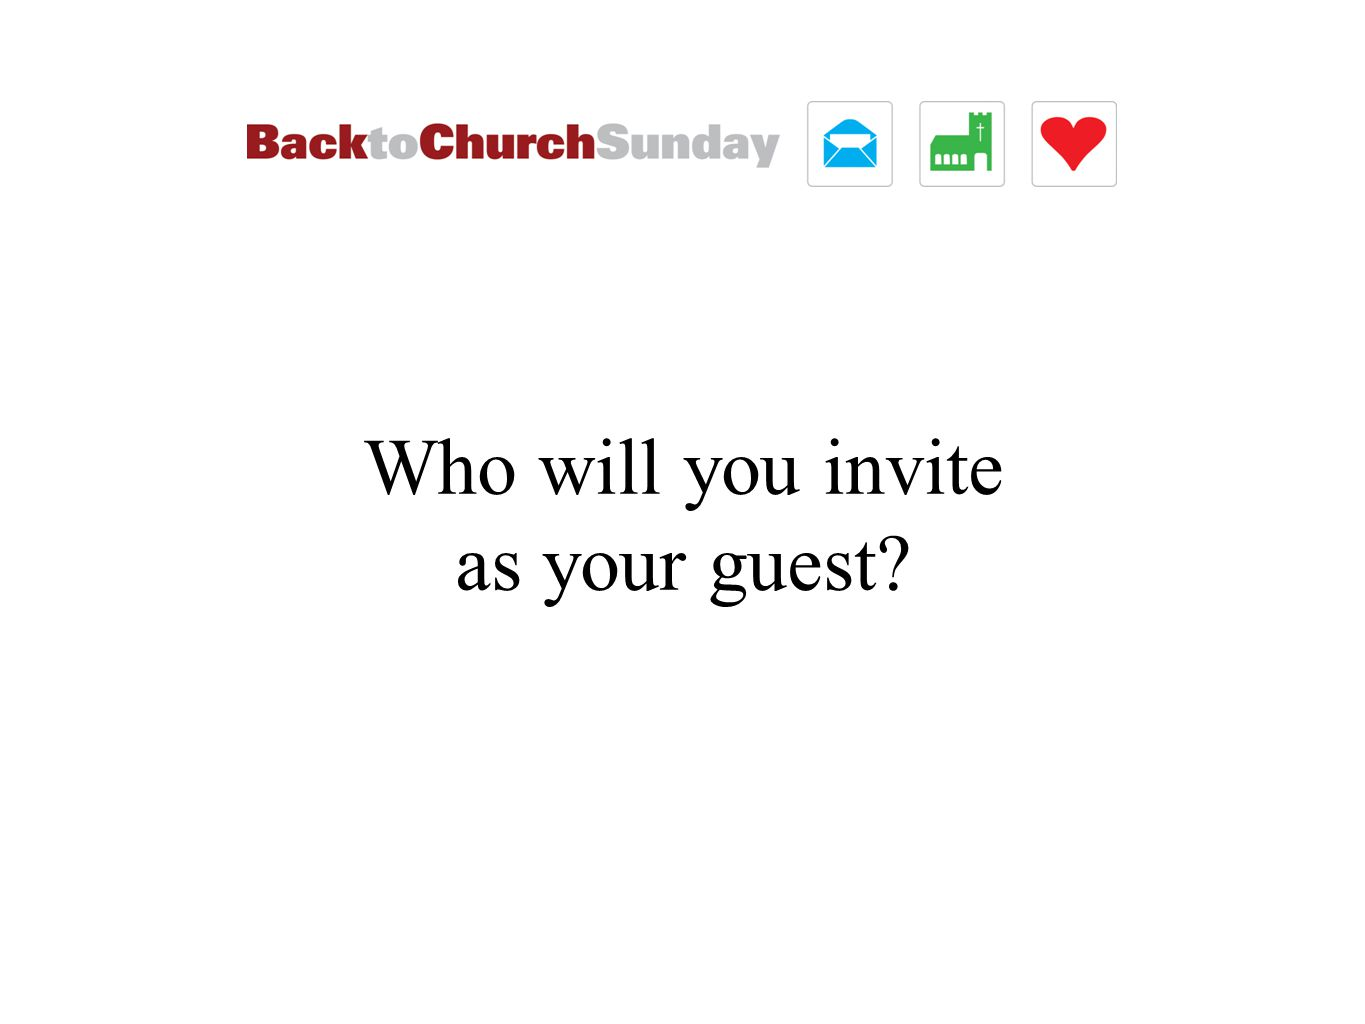 Who will you invite as your guest?